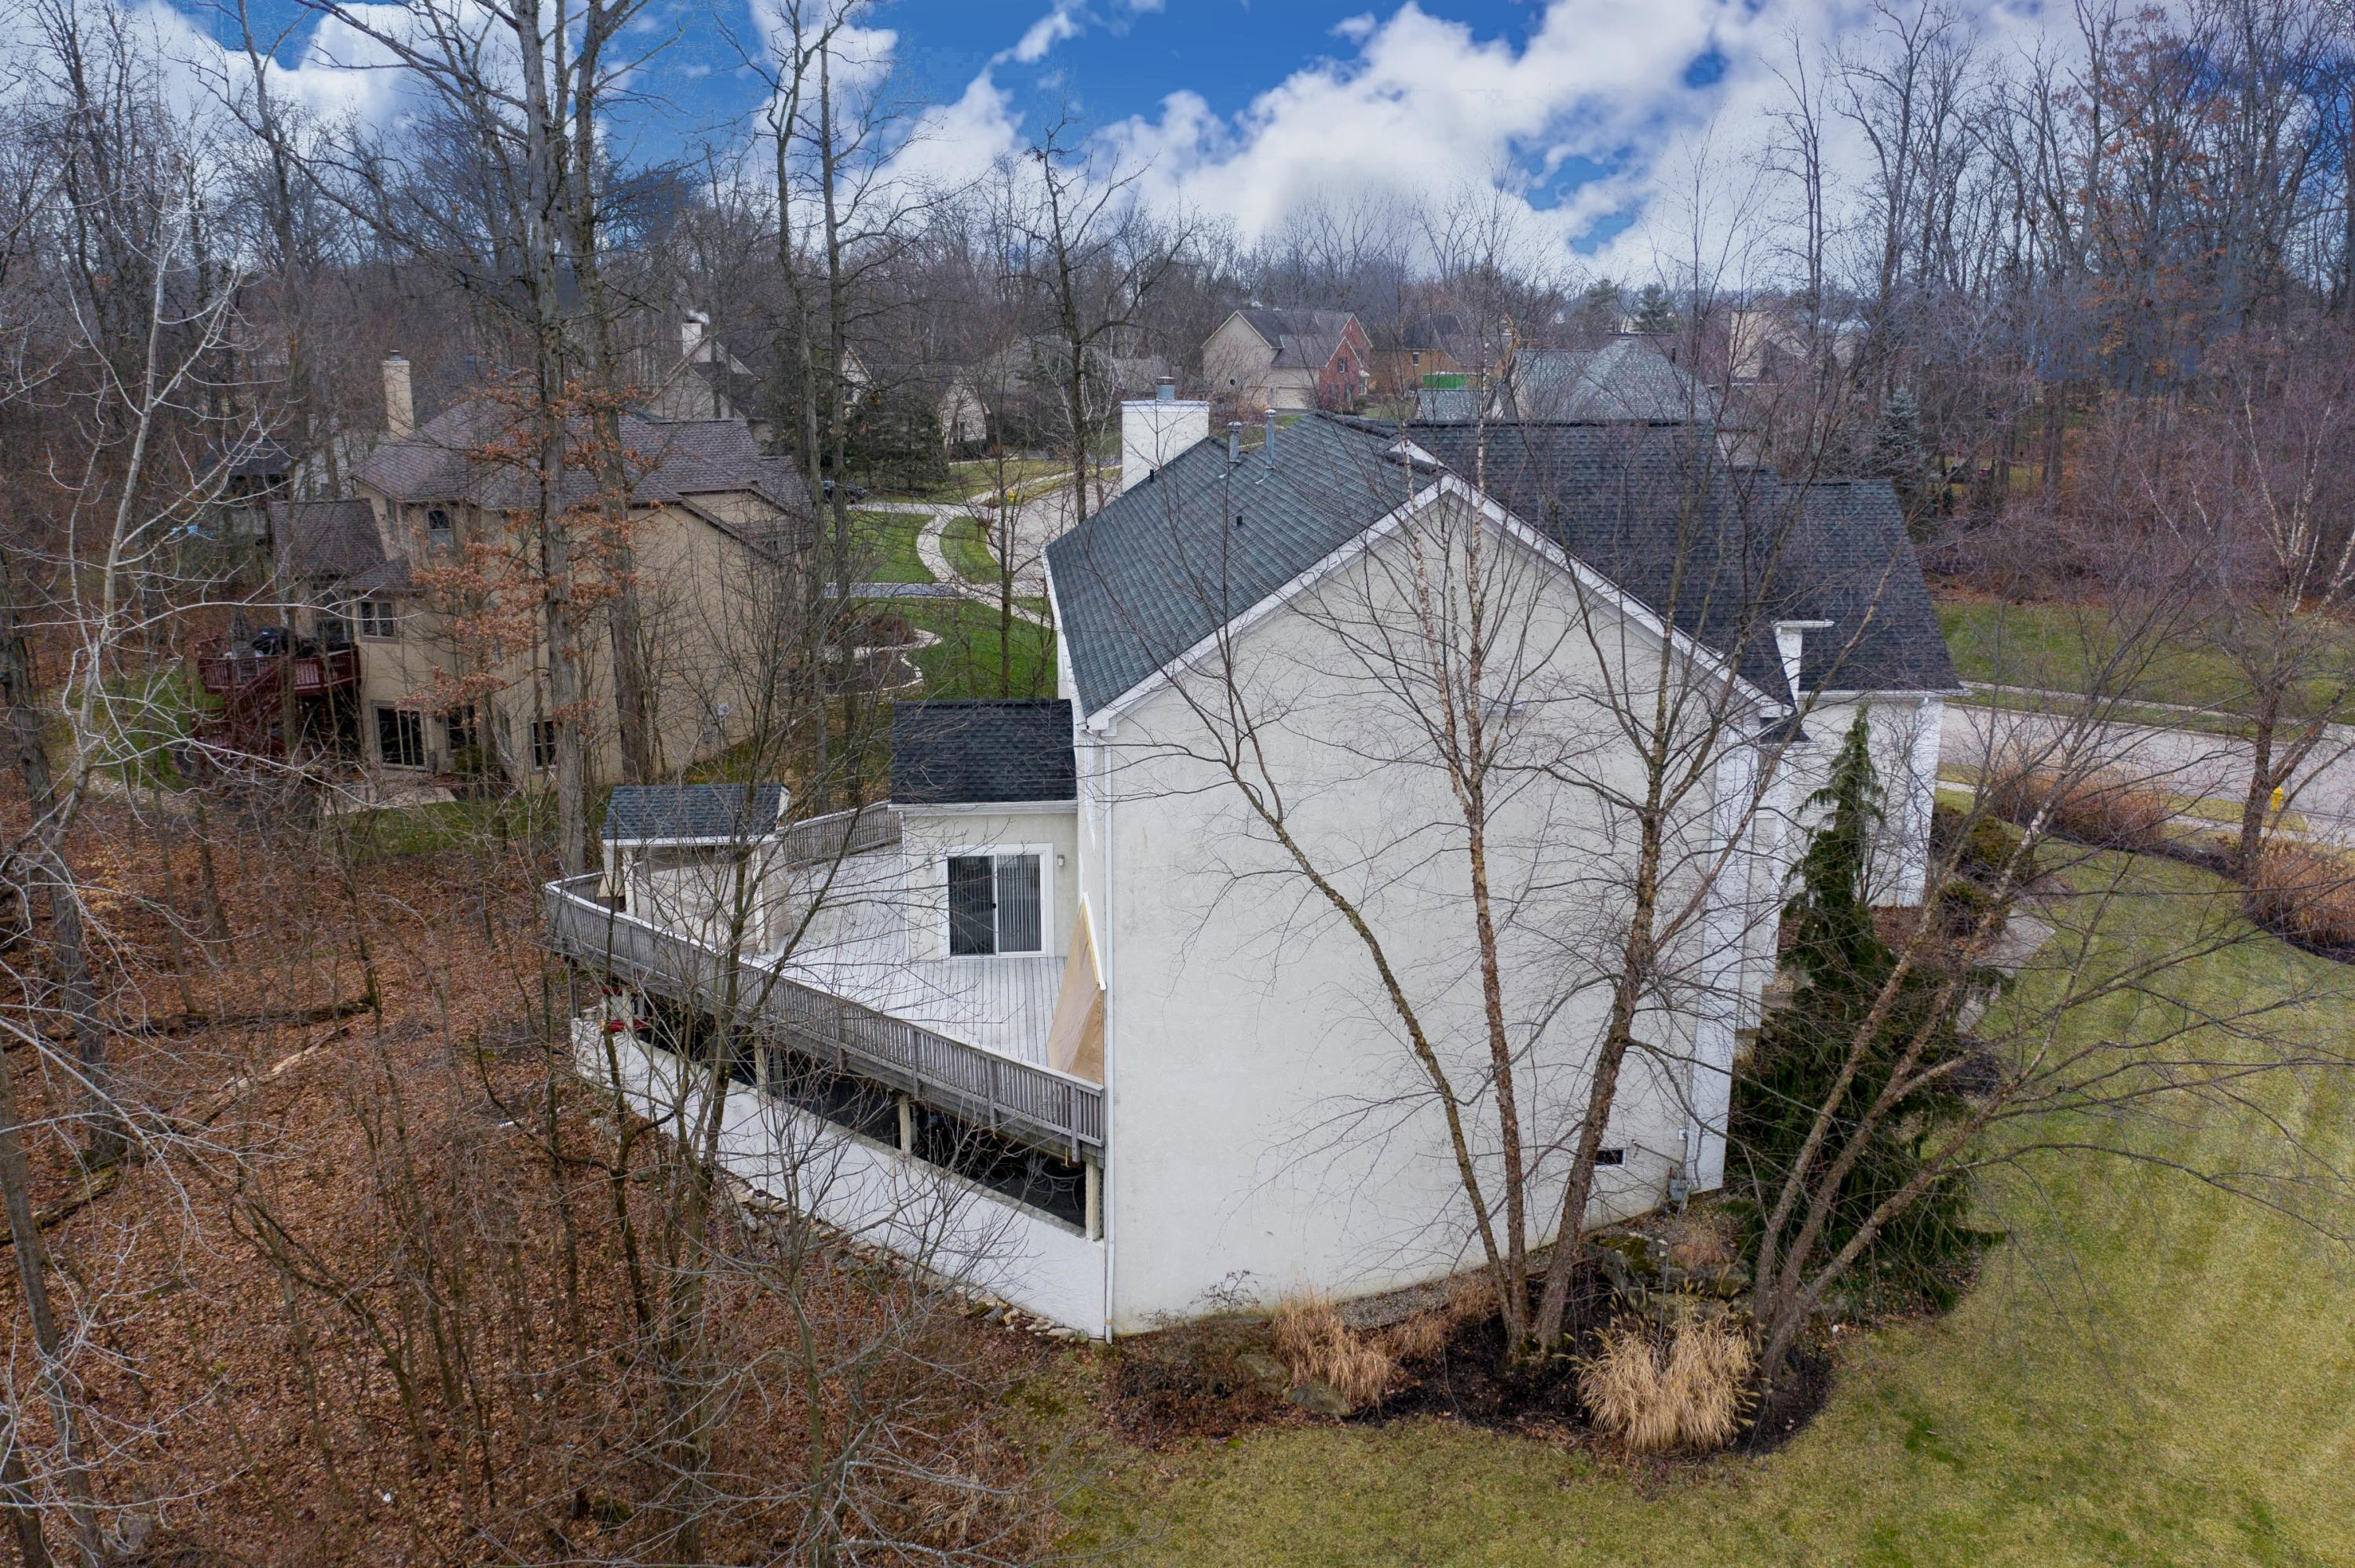 2690 Aikin Circle, Lewis Center, Ohio 43035, 4 Bedrooms Bedrooms, ,5 BathroomsBathrooms,Residential,For Sale,Aikin,221000962